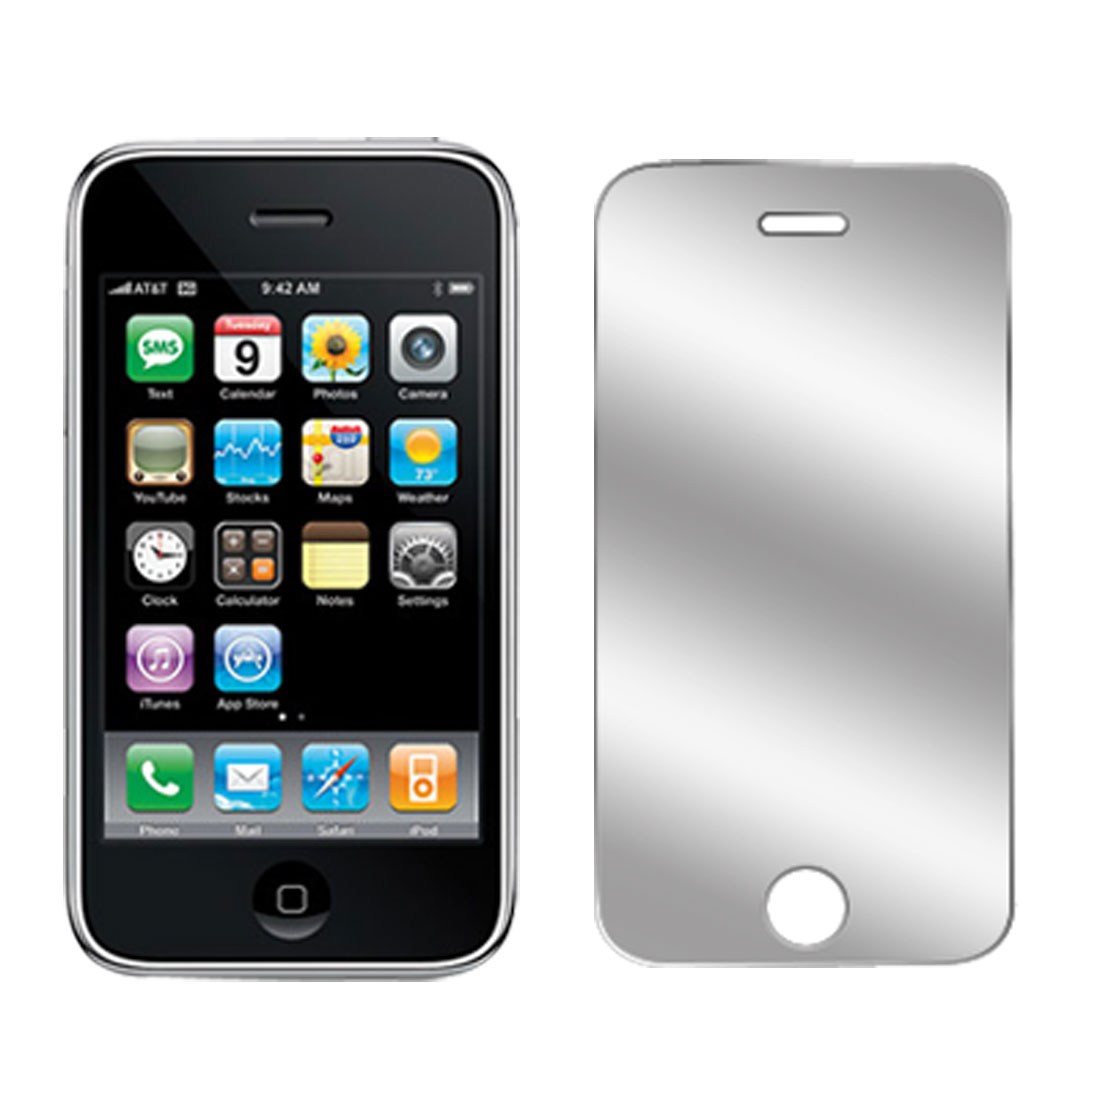 LCD Screen Guard Protector Clear for Apple iPhone 3G